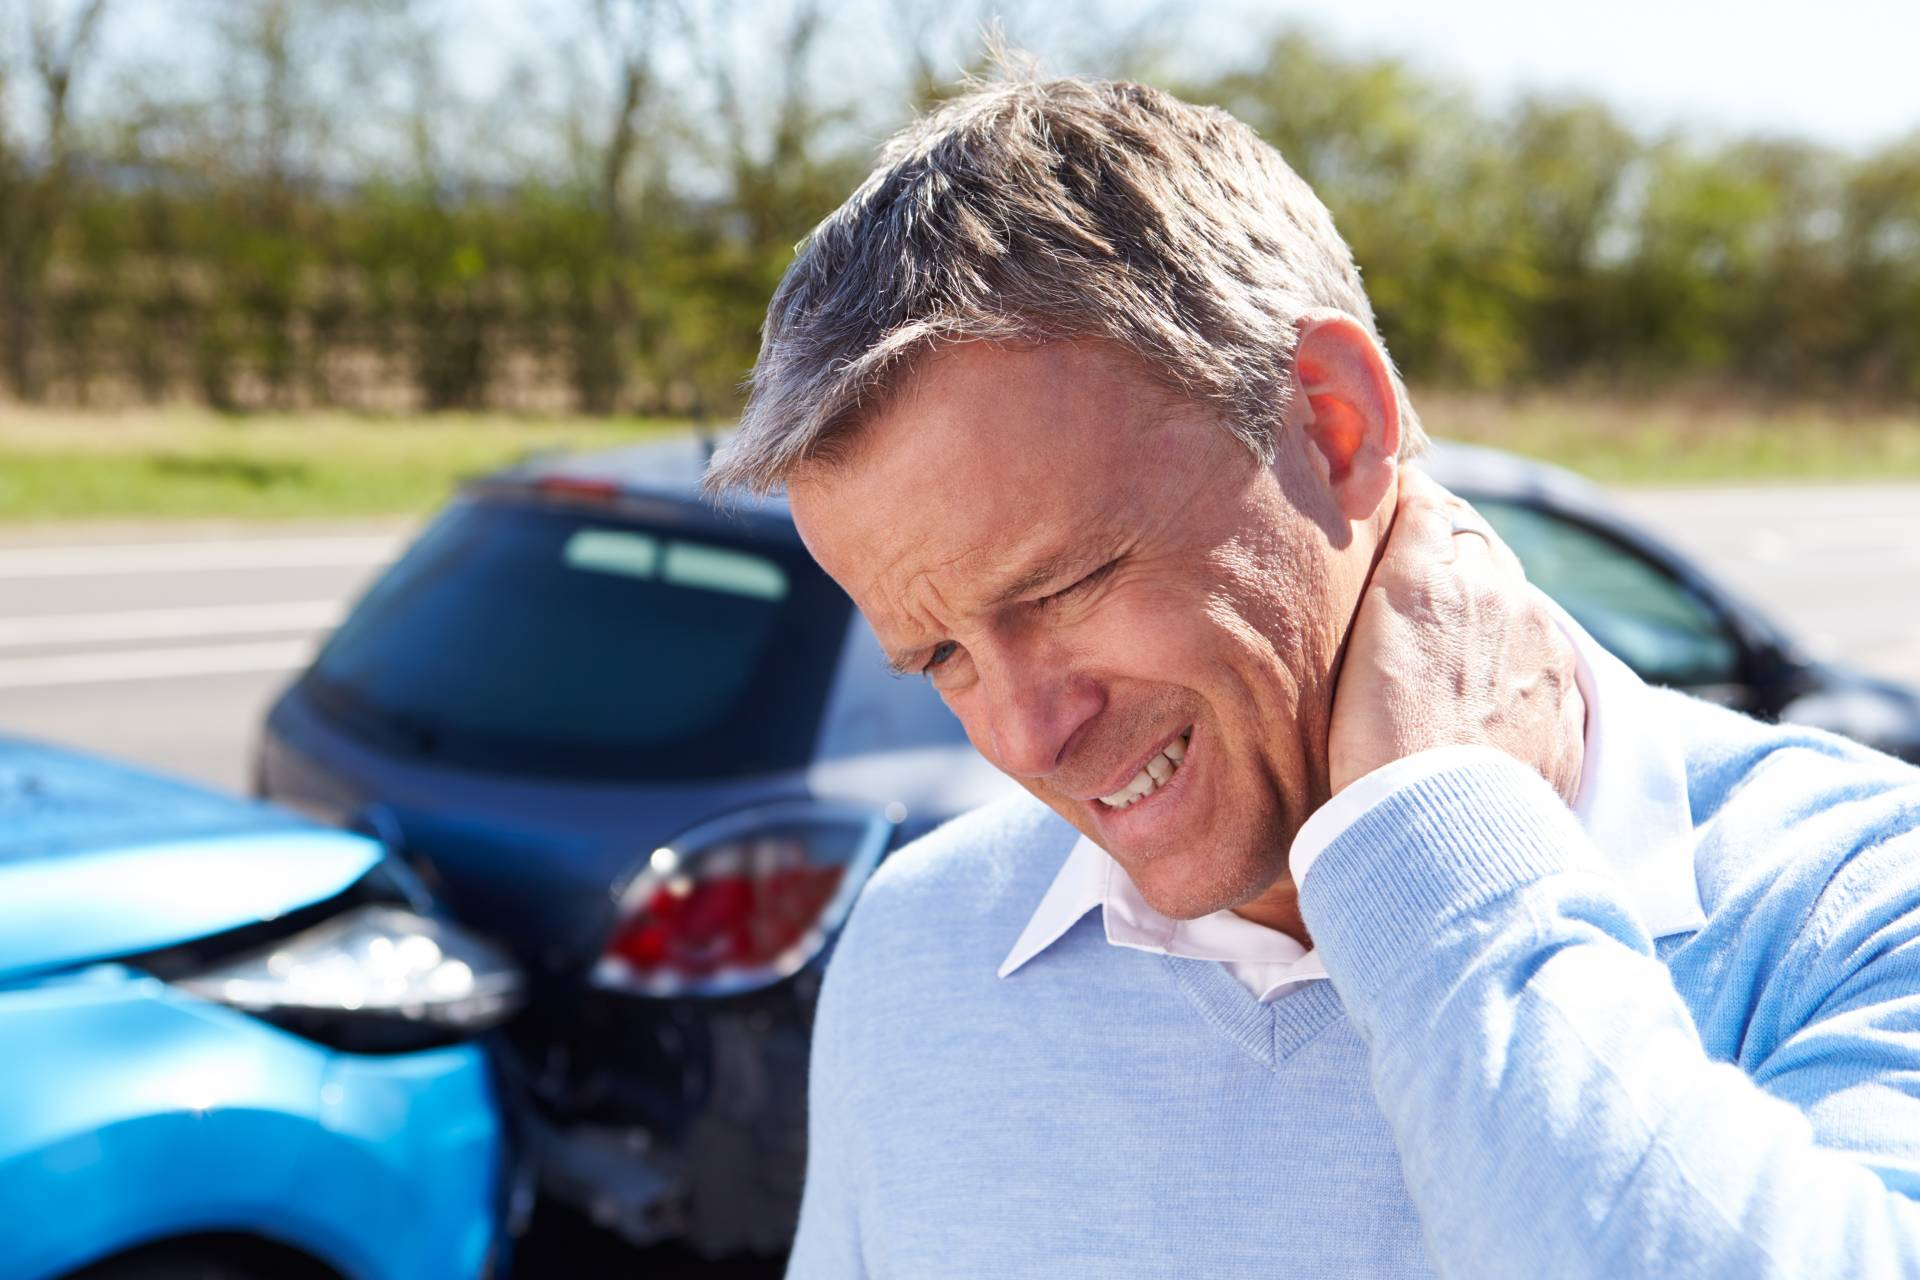 Injured in an auto accident. Contact an Angell Firm lawyer